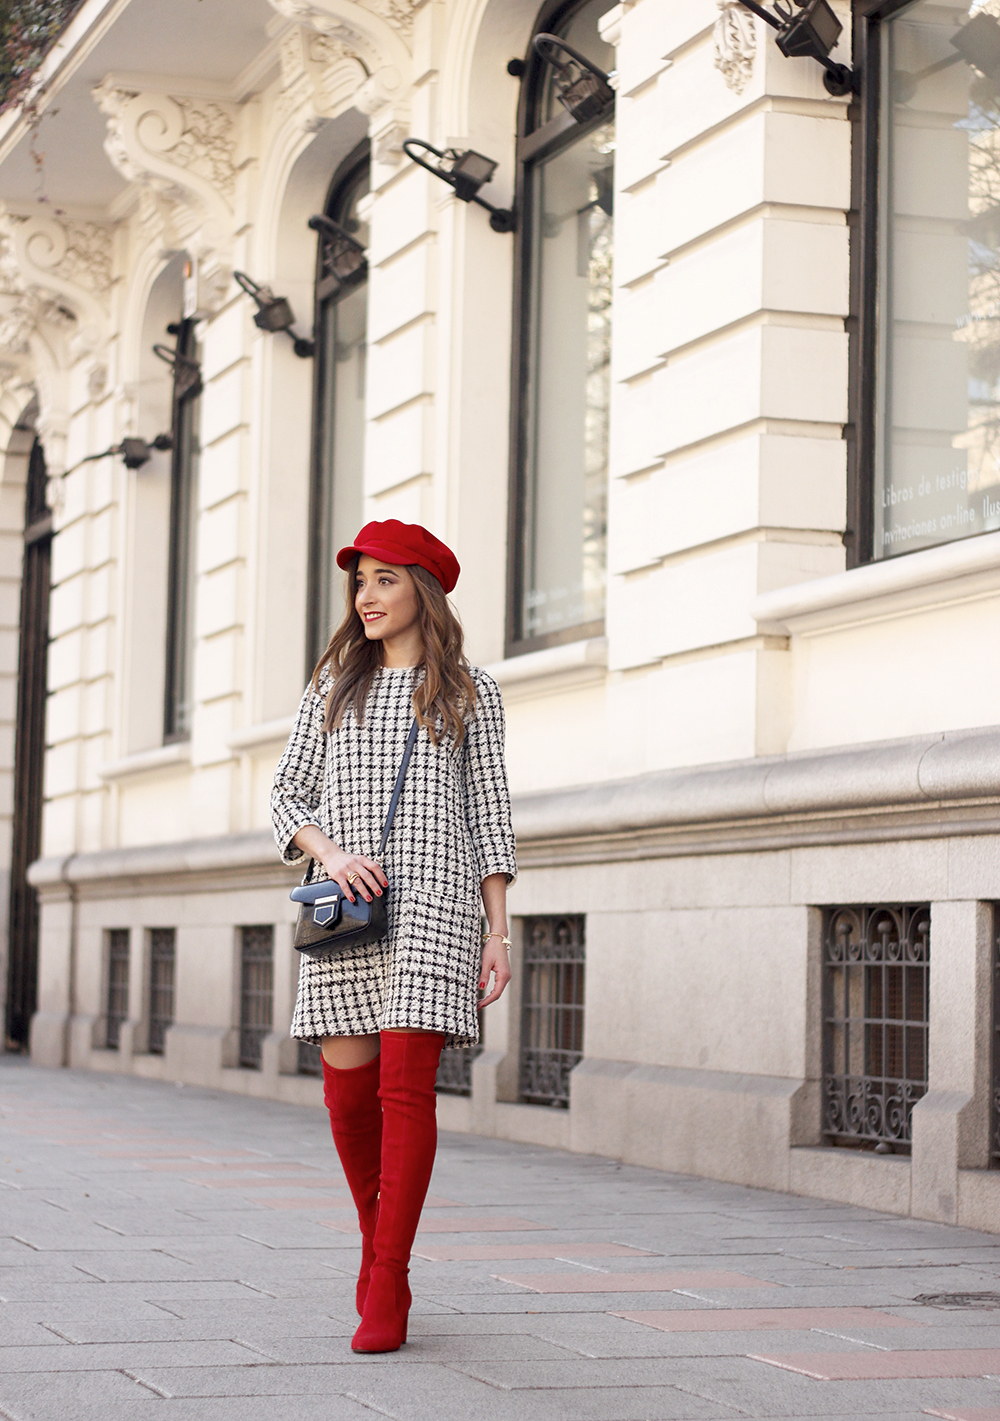 squares dress red over the knee boots givenchy bag red cap winter outfit look invierno01